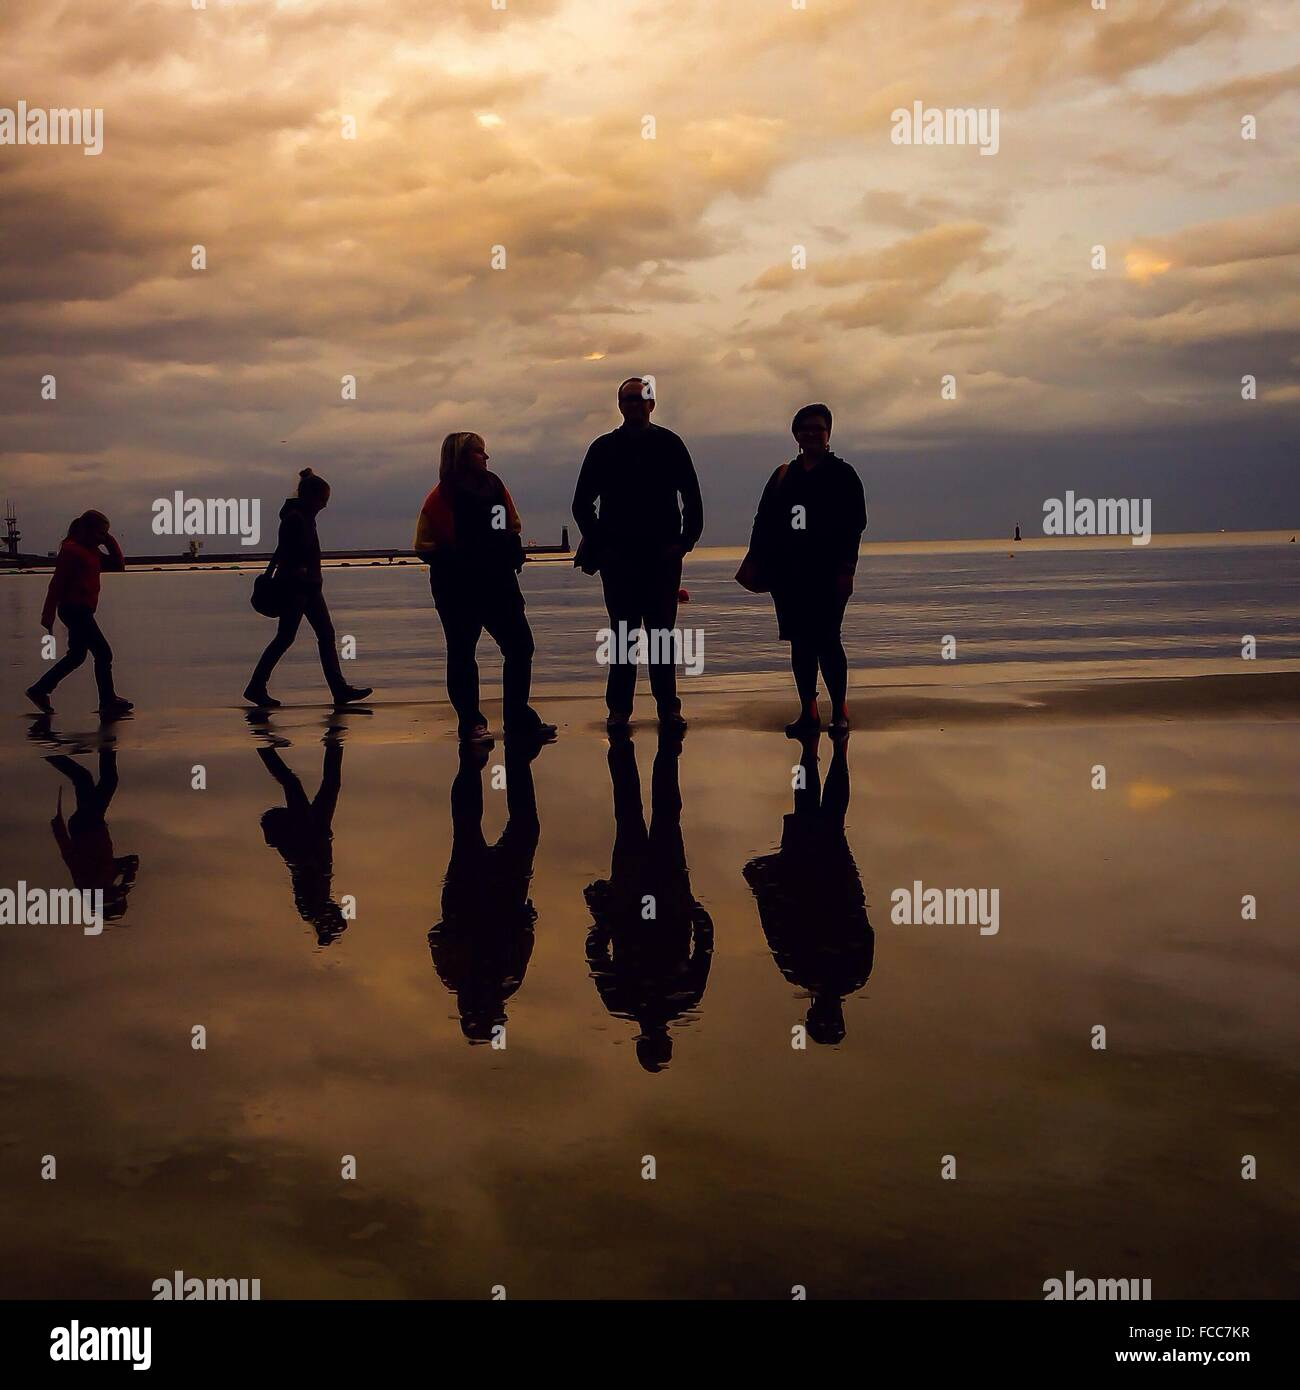 Silhouette People On Beach At Dusk - Stock Image